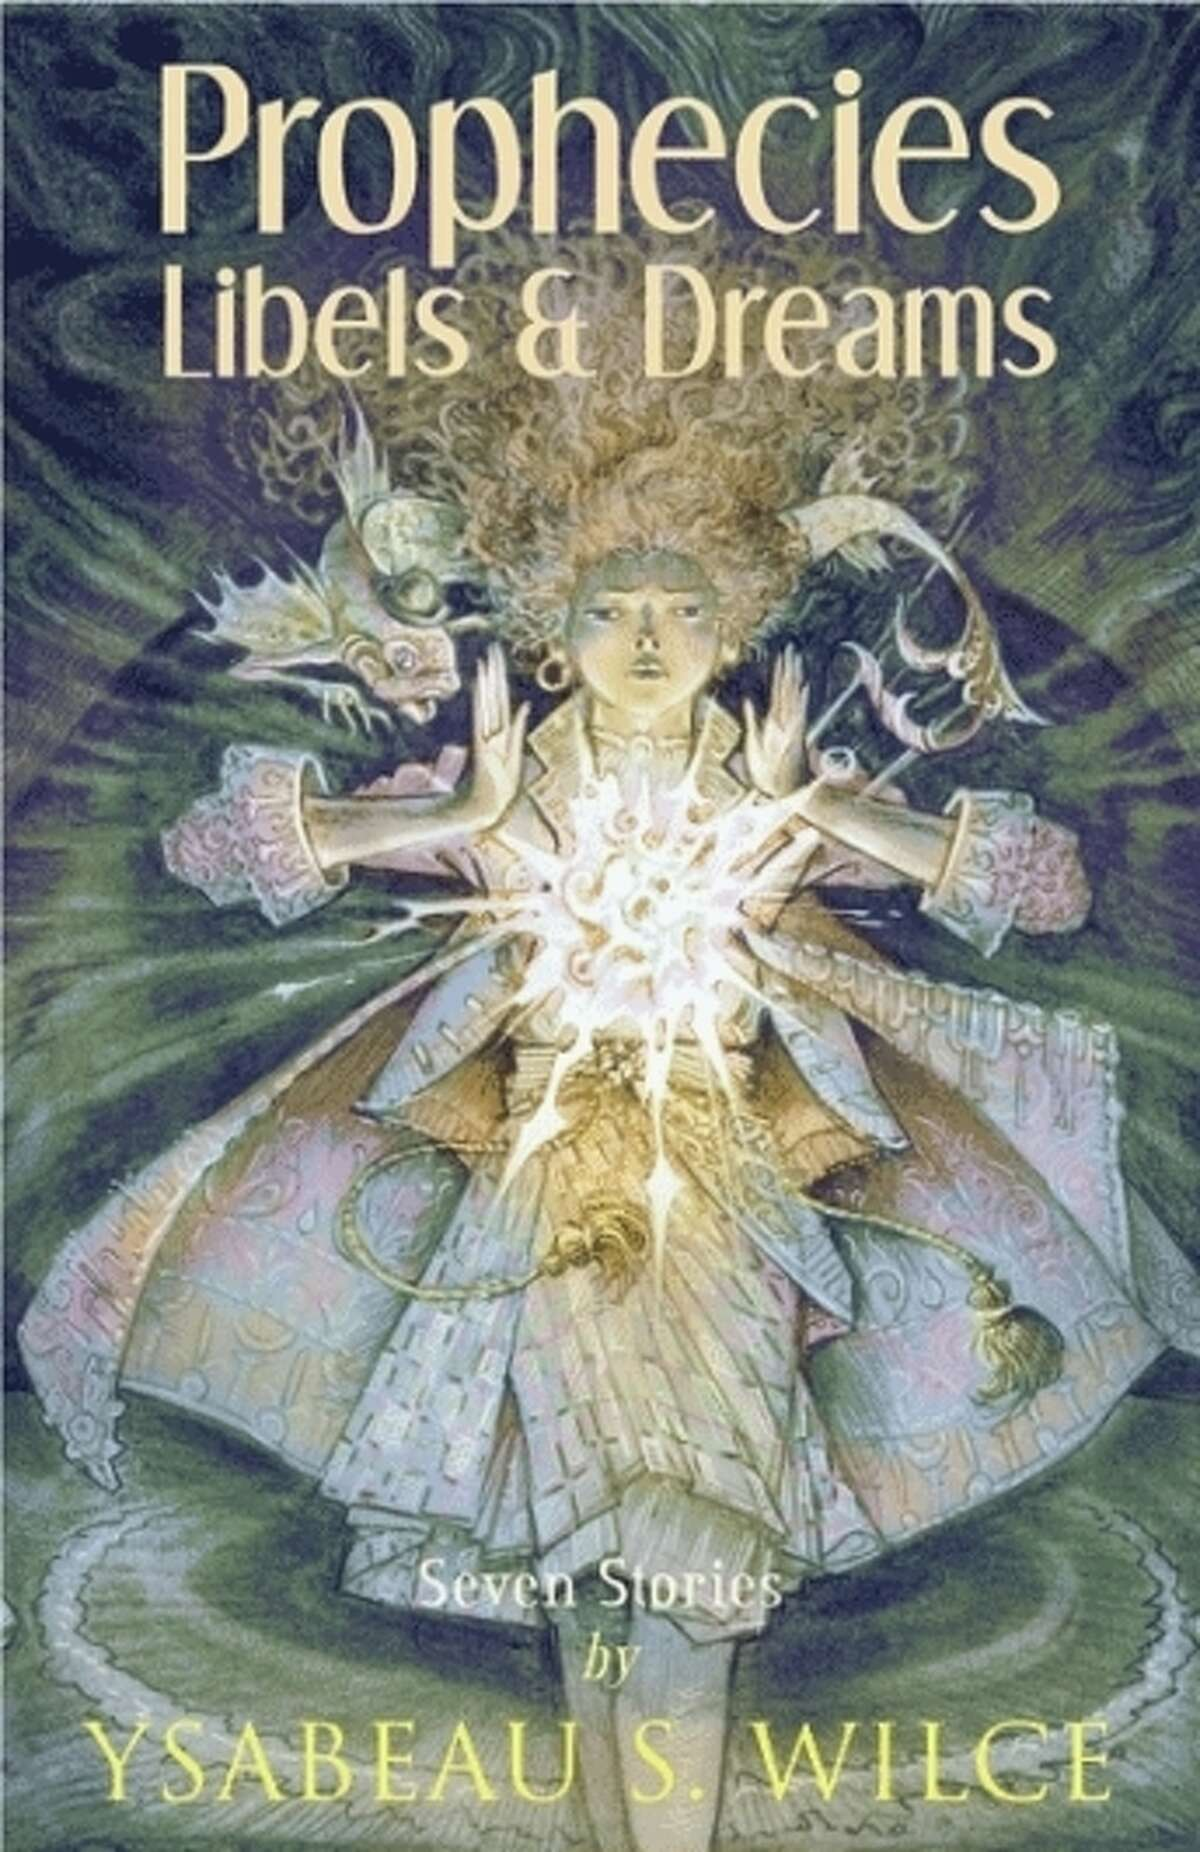 """""""Prophecies, Libels & Dreams: Stories of Califa,"""" by Ysabeau S. Wilce"""